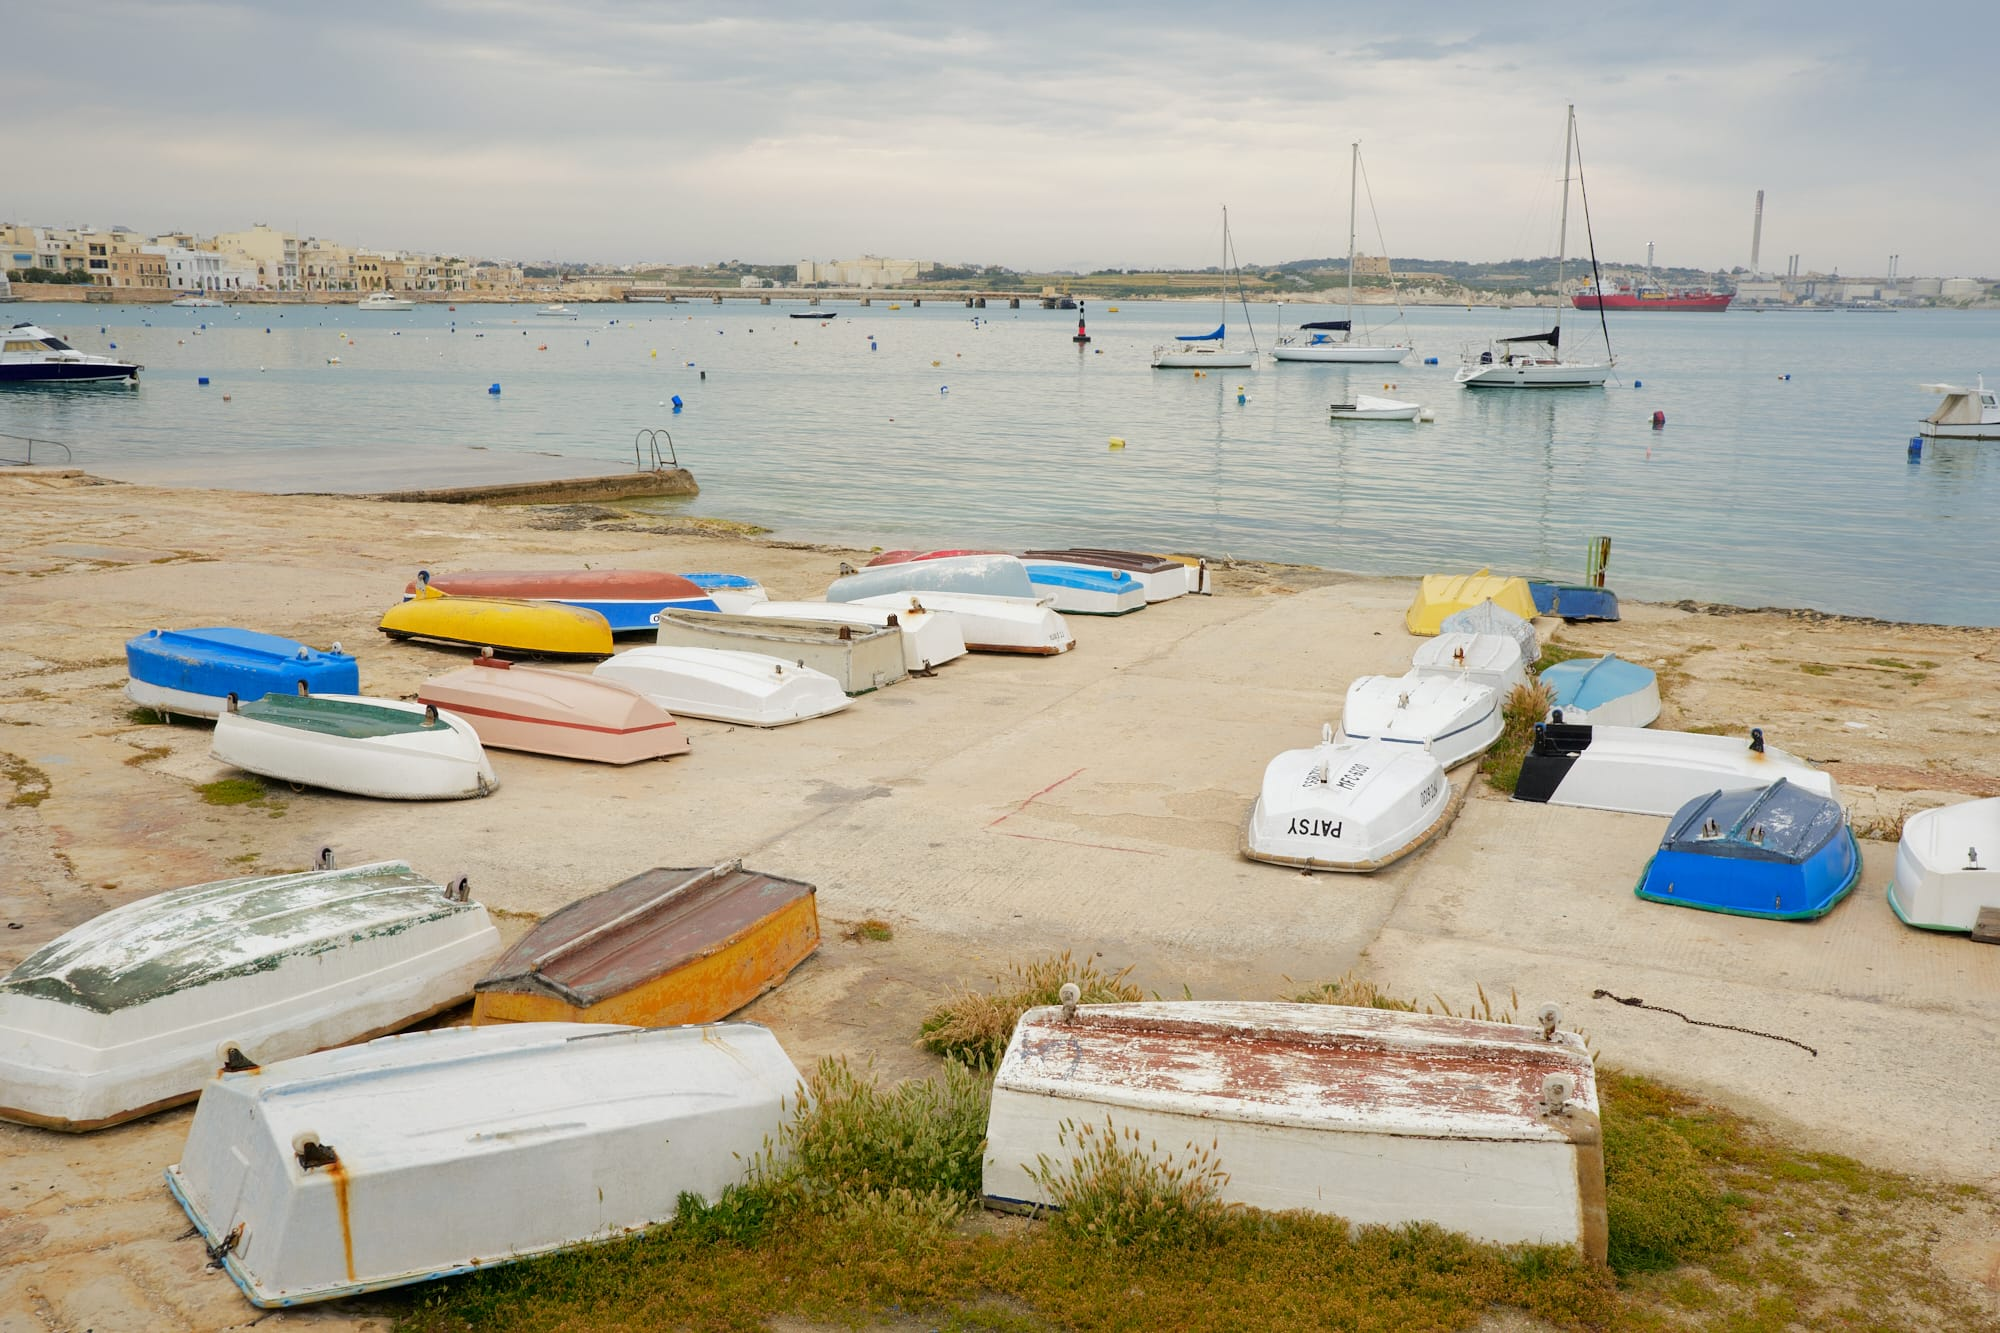 boats on the shore of Pretty Bay